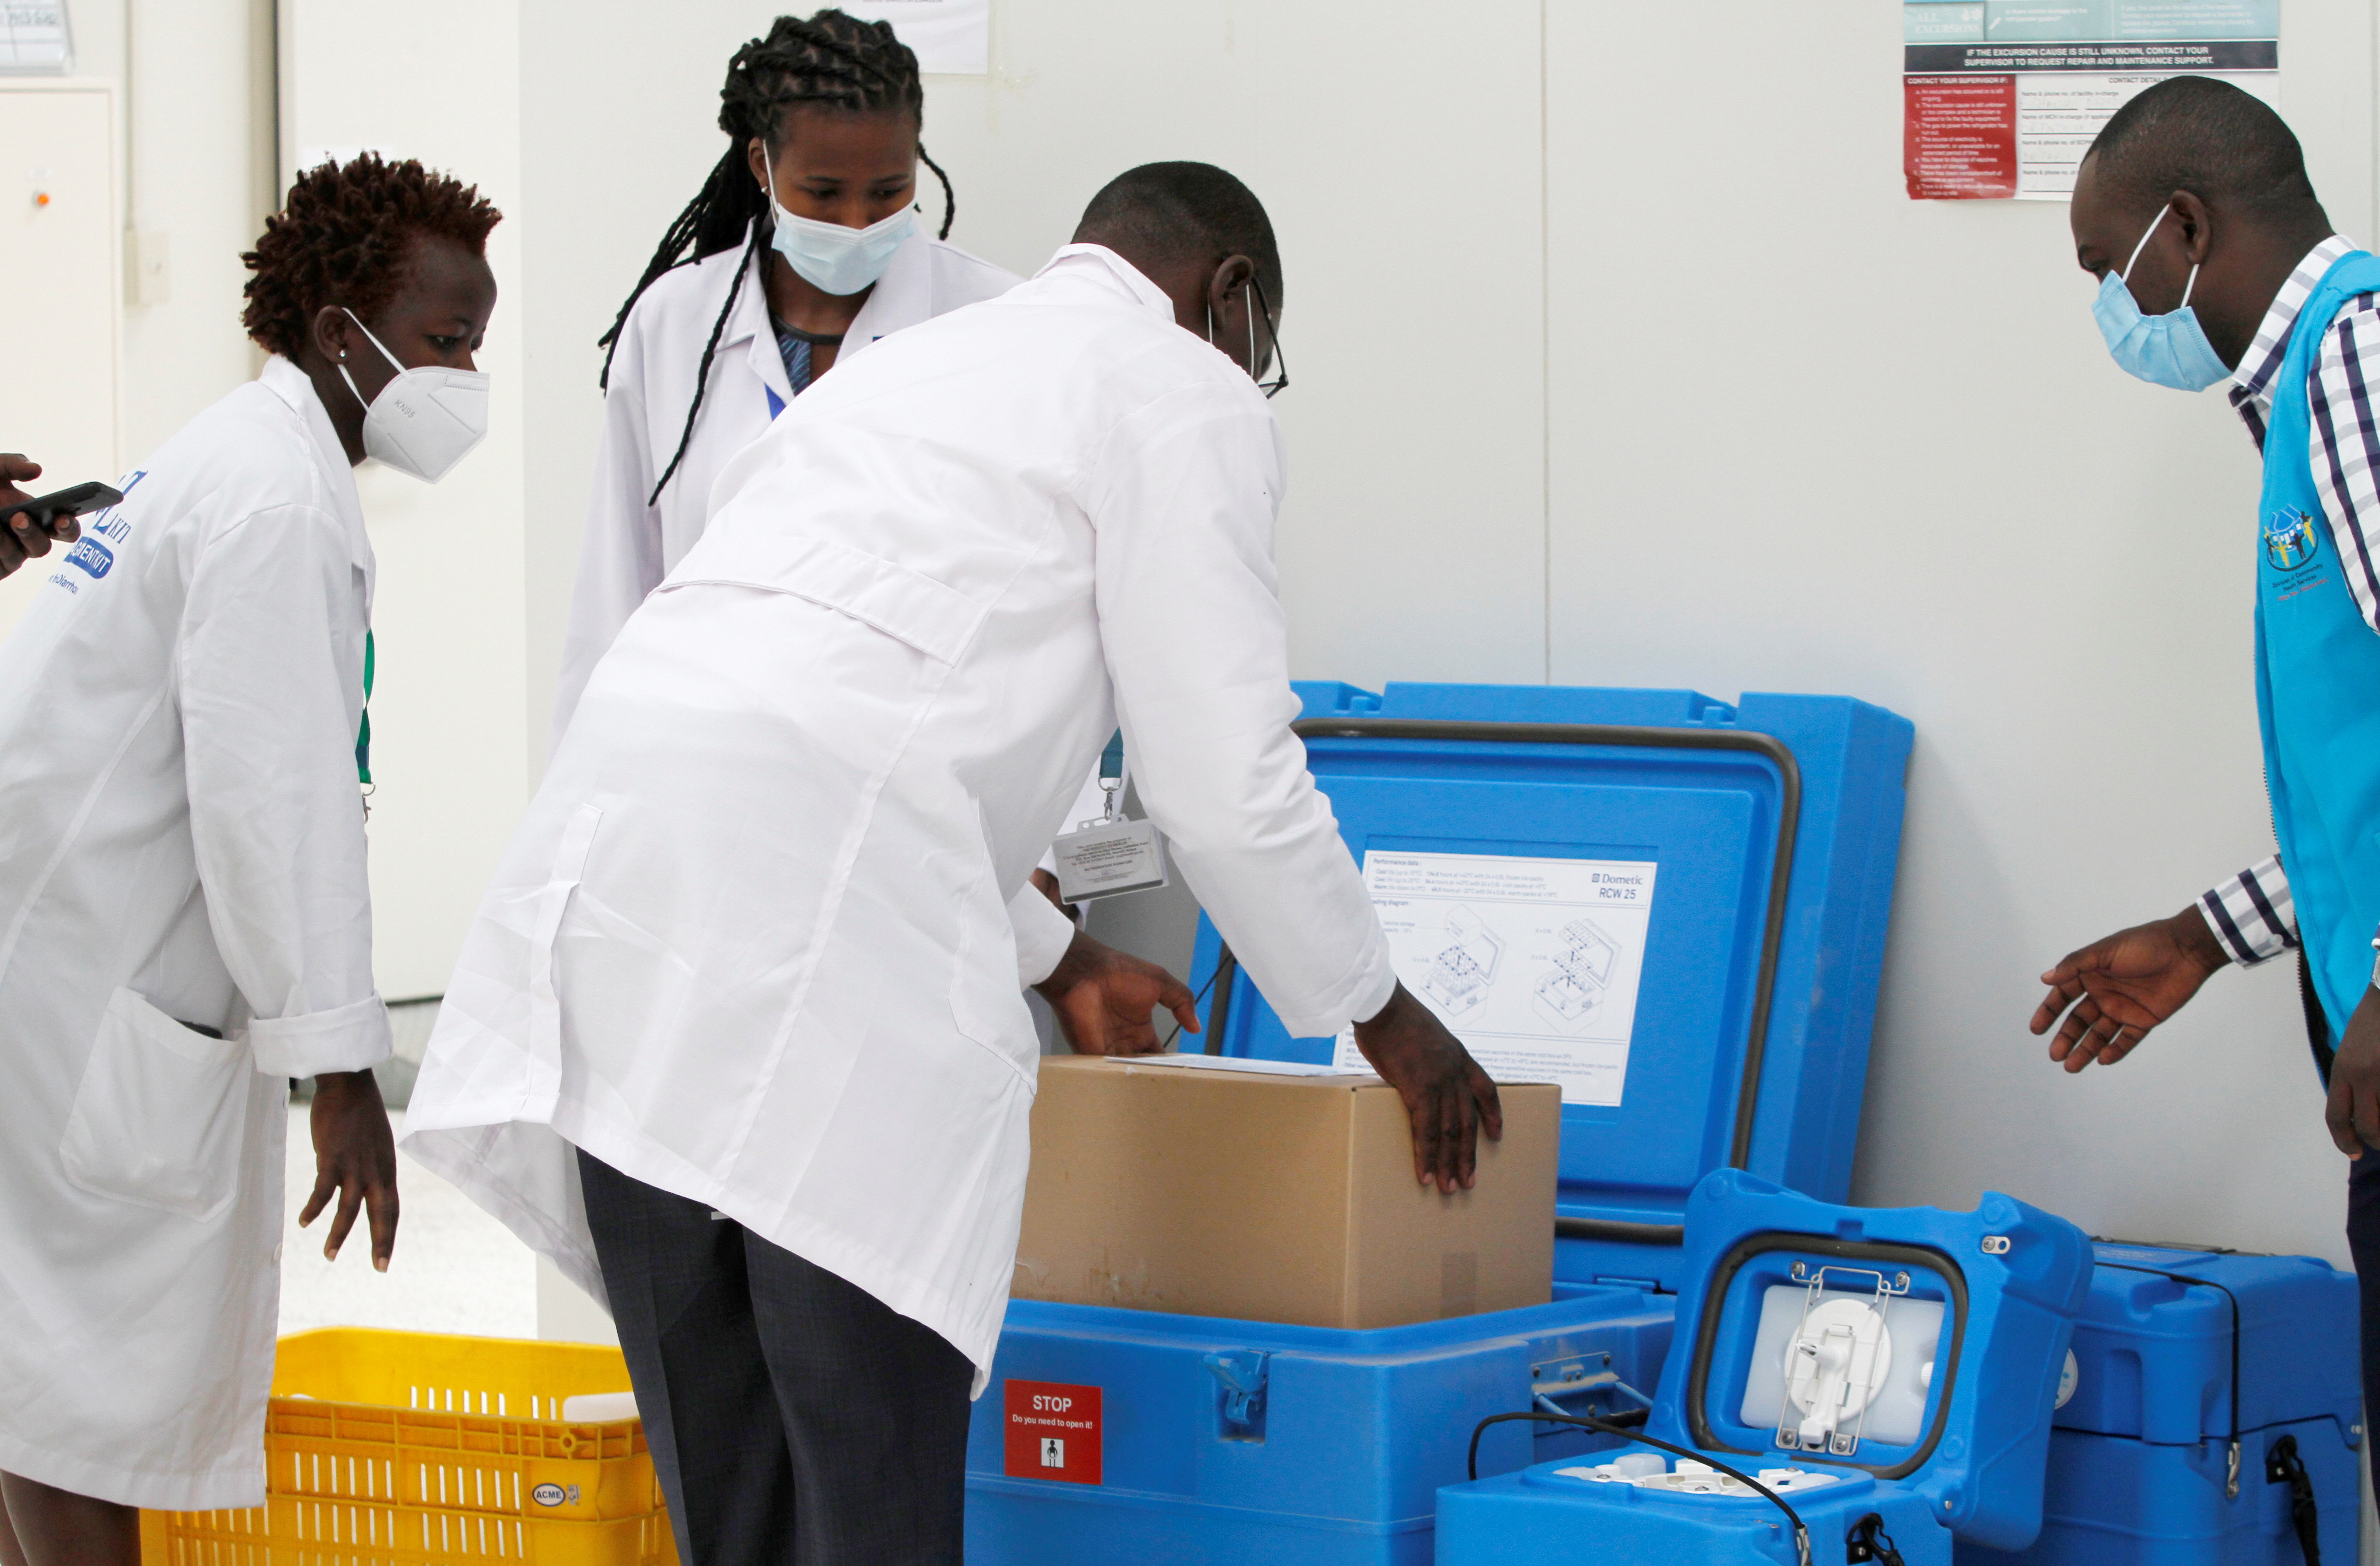 Biomedical engineers pack a consignment of AstraZeneca/Oxford vaccines under the COVAX scheme against coronavirus disease (COVID-19), before distribution at the Kitengela cold rooms stores in Kitengela, outside Nairobi, Kenya March 4, 2021. REUTERS/Monicah Mwangi